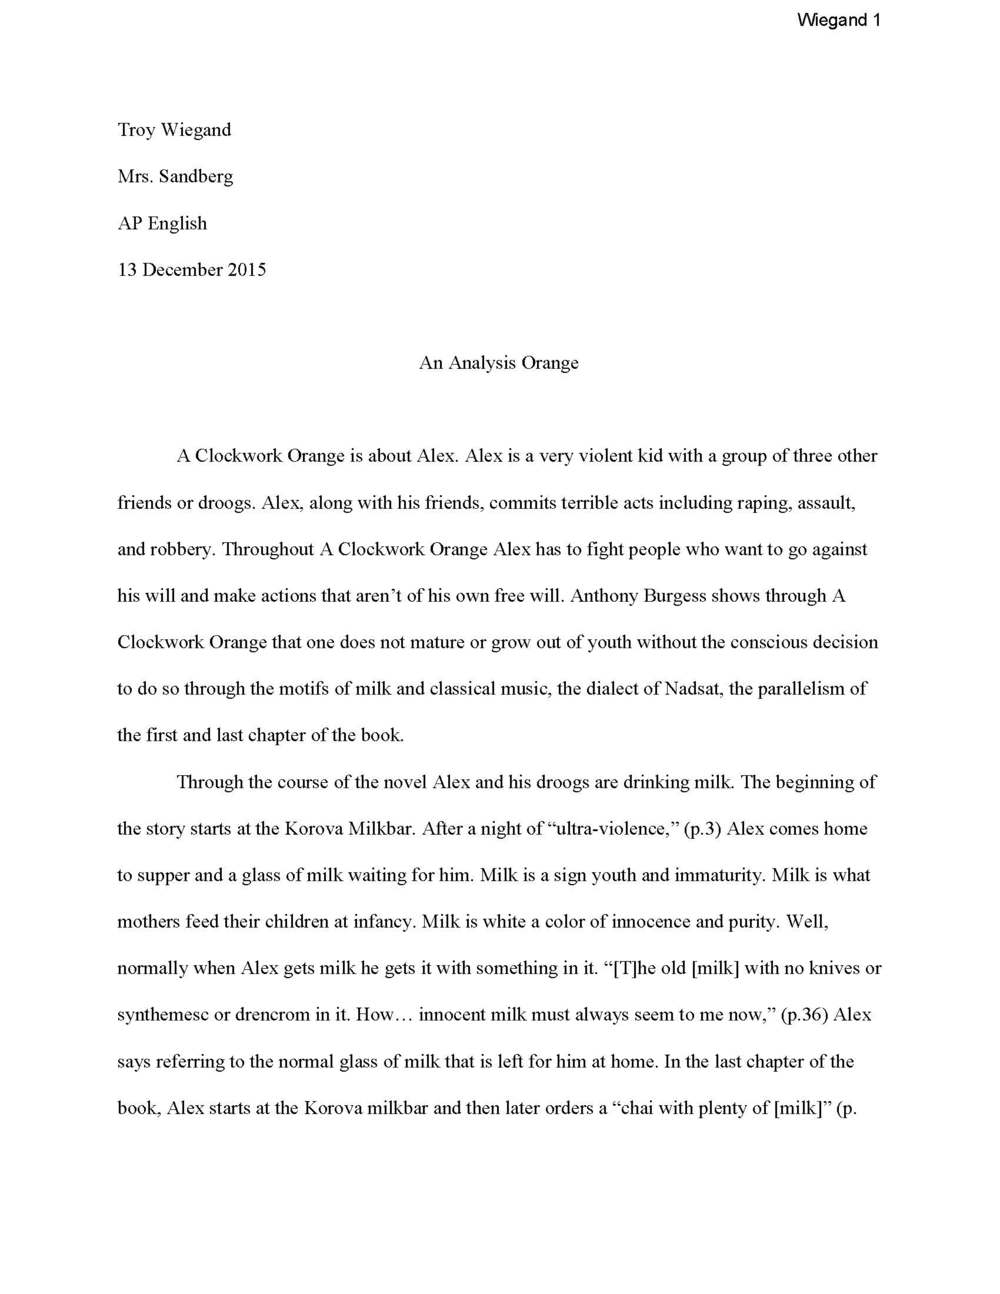 a booktalk orange troy wiegand an anlysis orange page 1 jpg